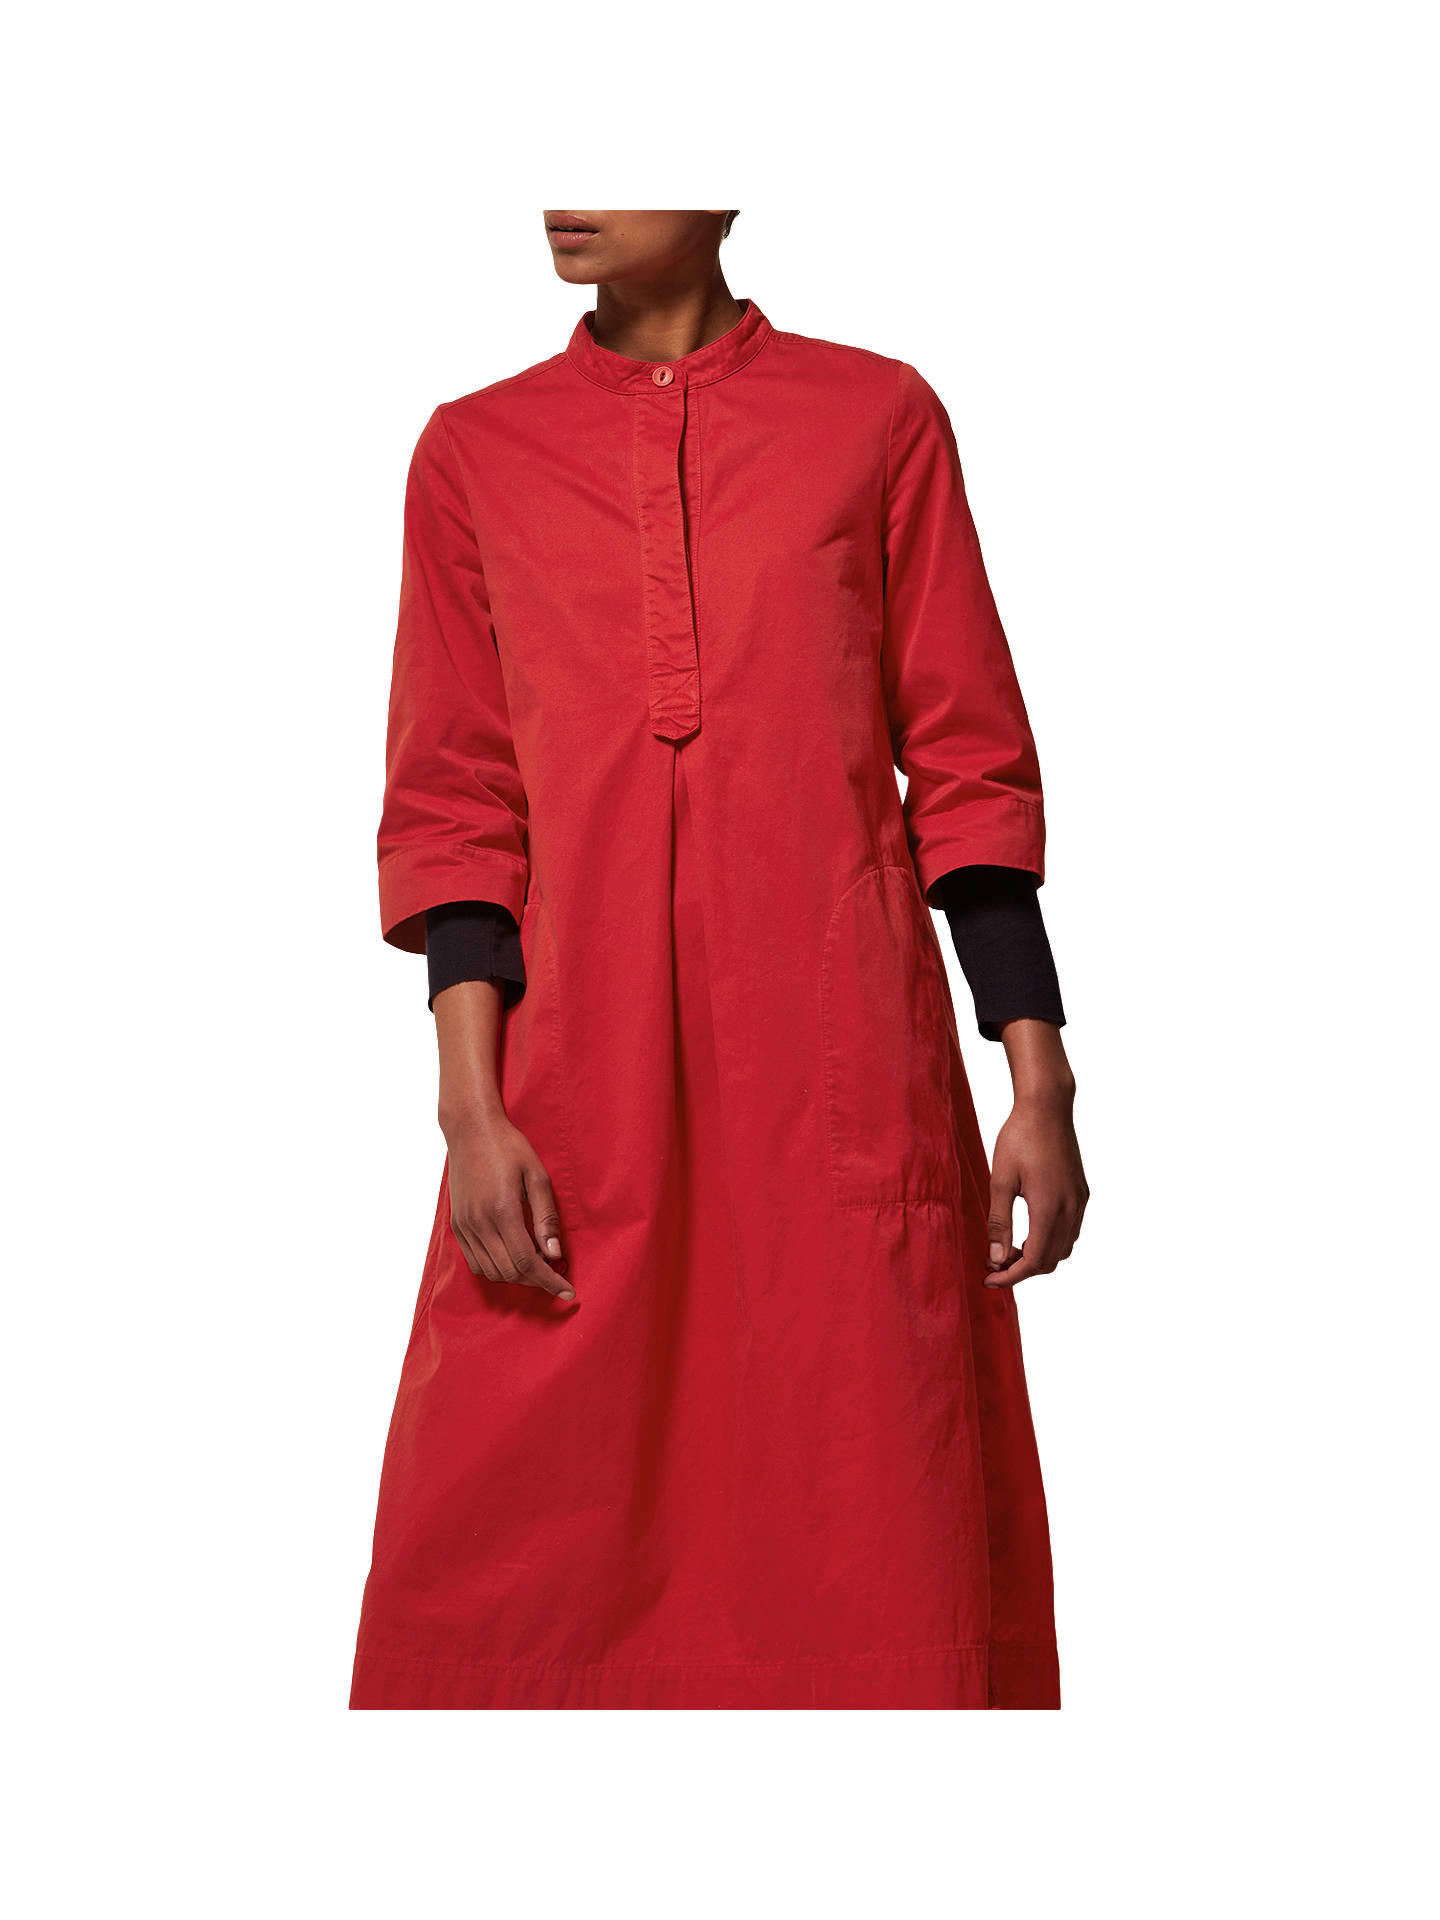 7c6082f75a8 Buy Toast Cotton Twill Tunic Dress, Scarlet, 8 Online at johnlewis.com ...